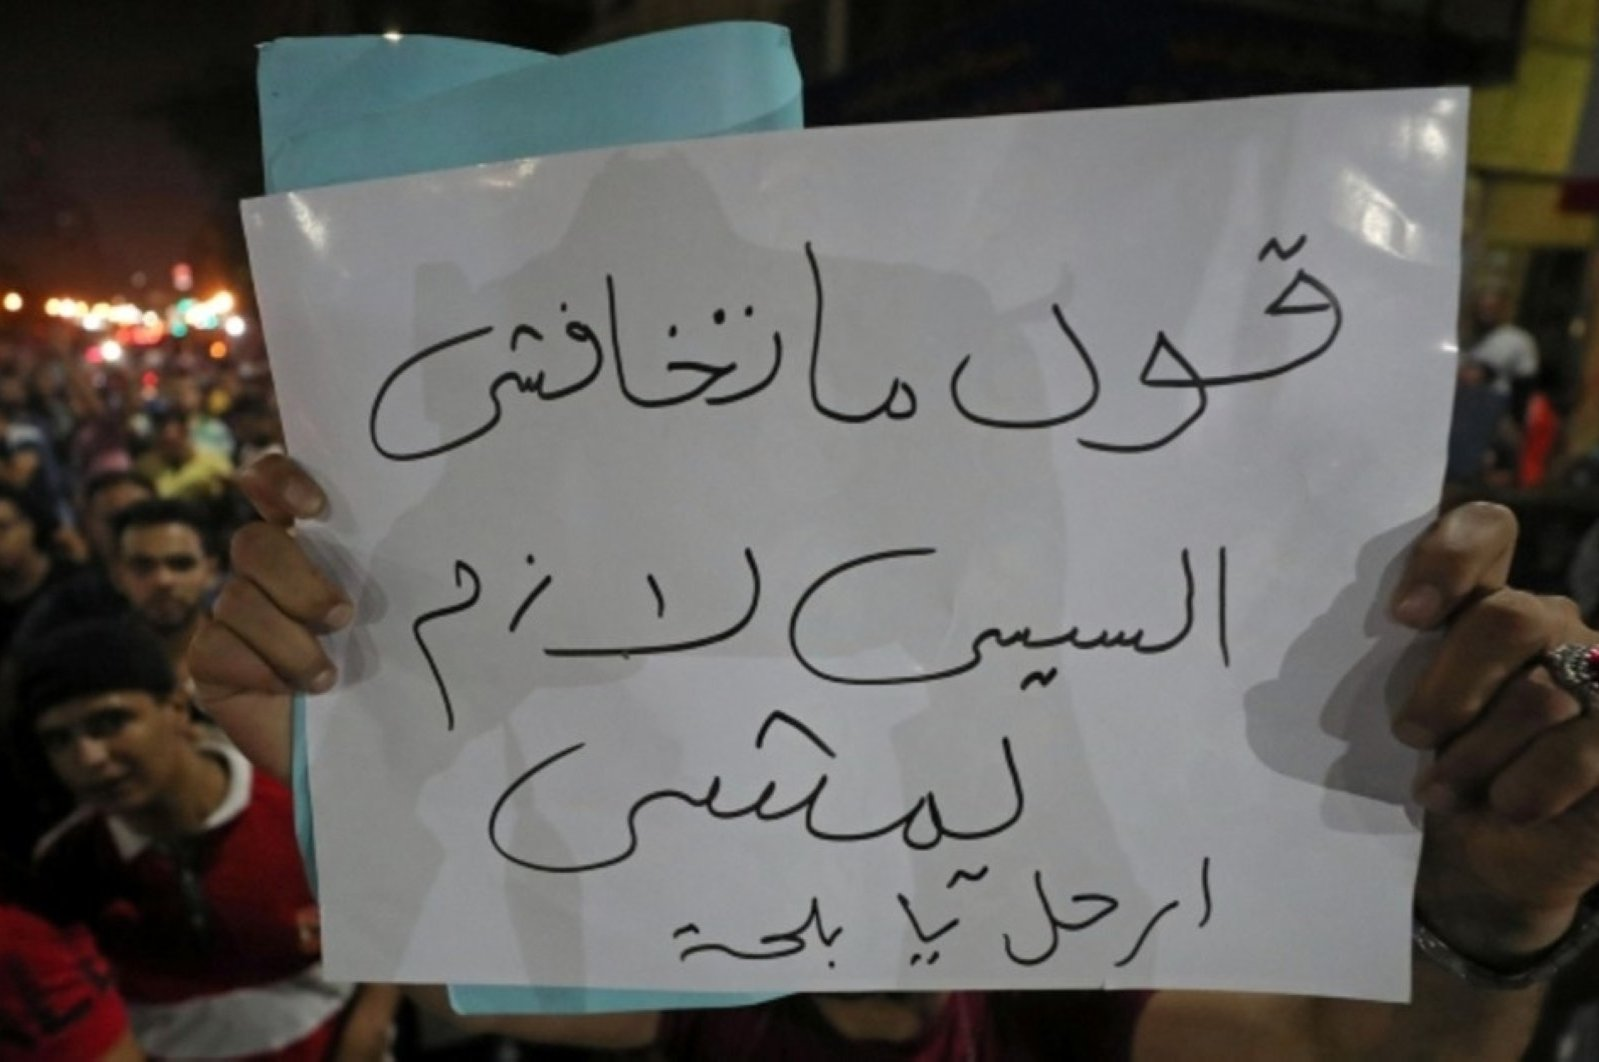 """A protester carries a sign that reads, """"Don't be afraid; say el-Sissi must leave Cairo,"""" Sept. 21, 2019. (REUTERS Photo)"""